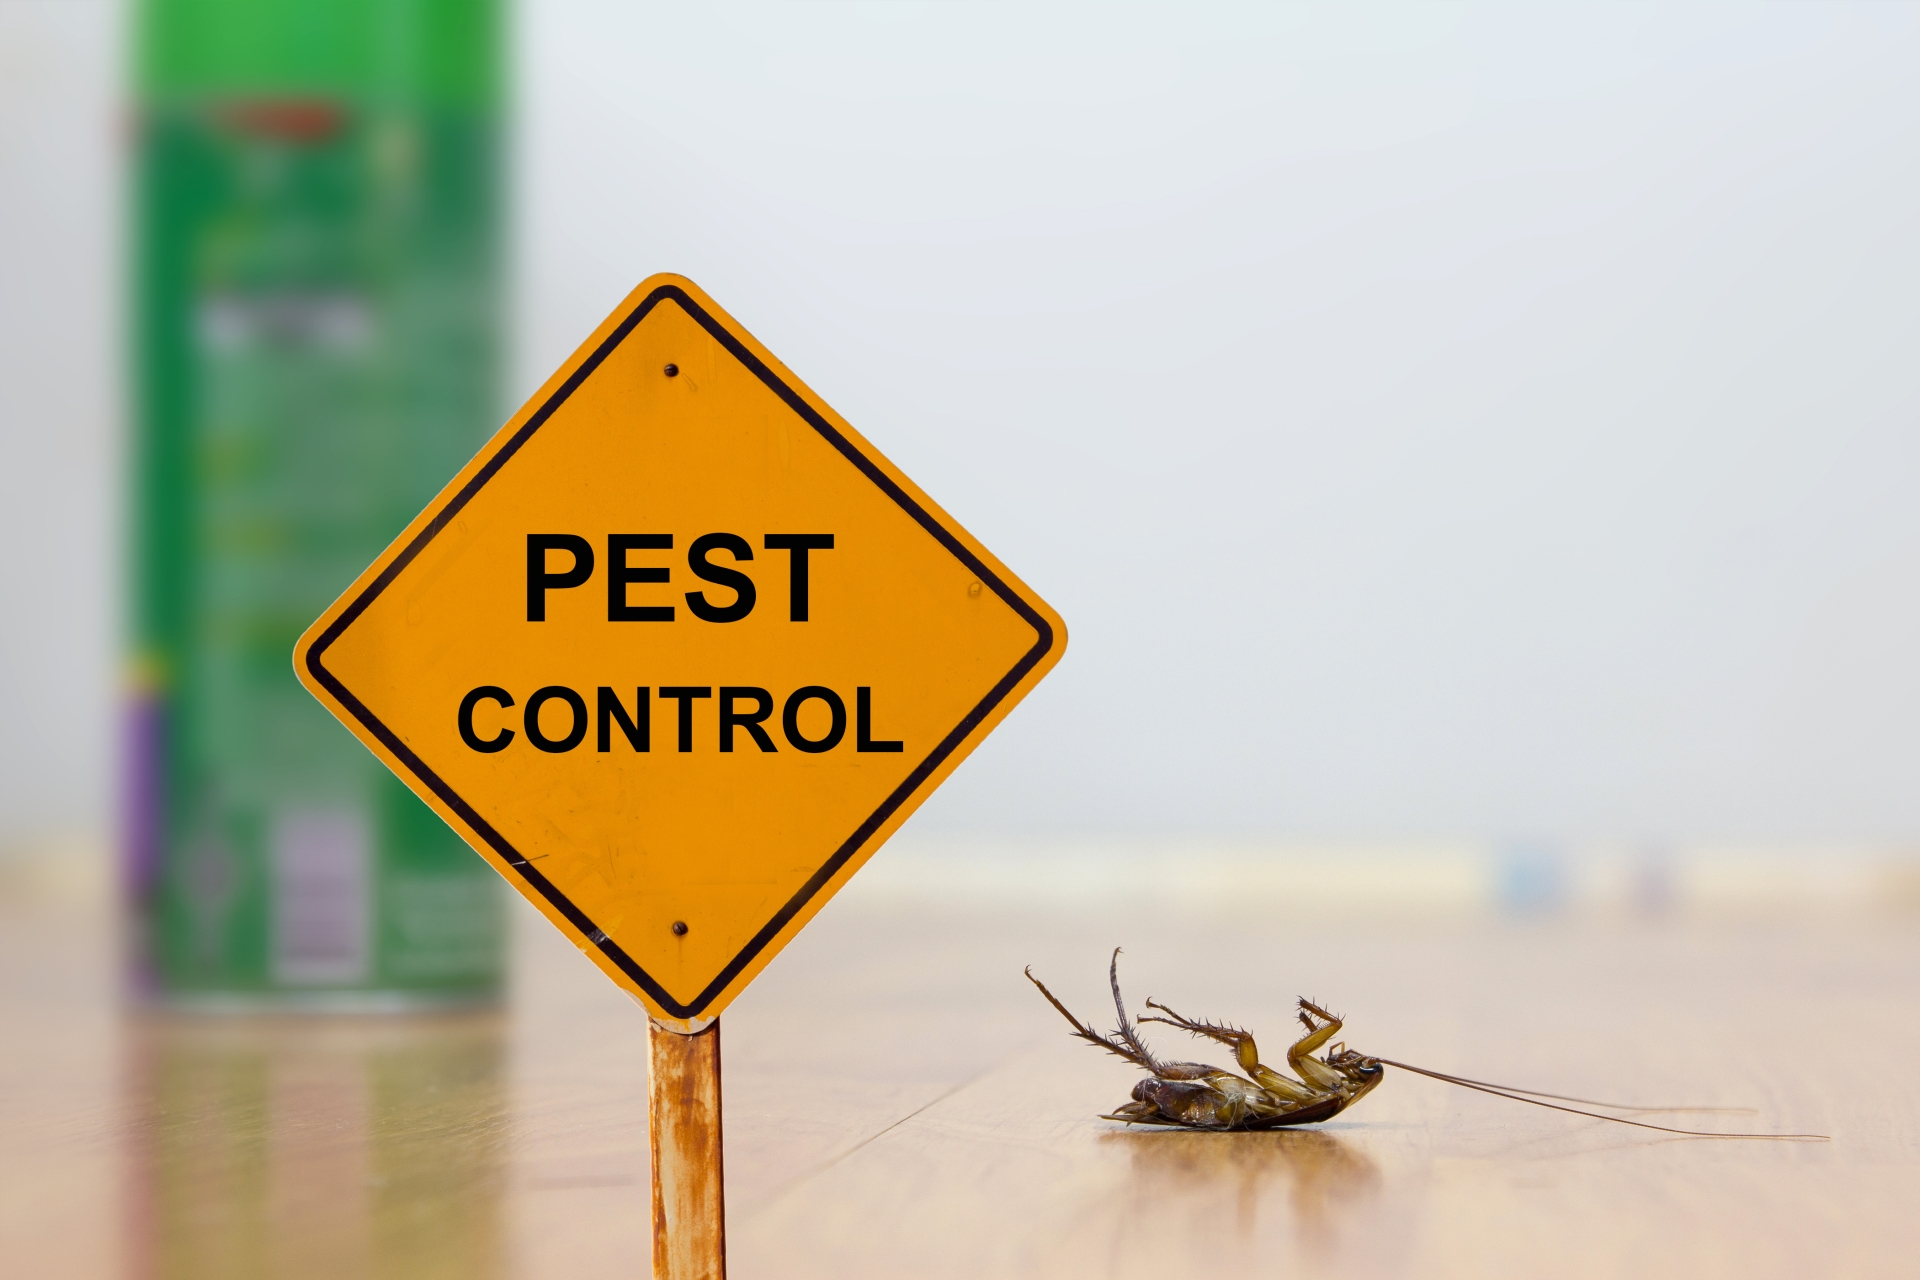 24 Hour Pest Control, Pest Control in Croydon, Addiscombe, Selhurst, CR0. Call Now 020 8166 9746